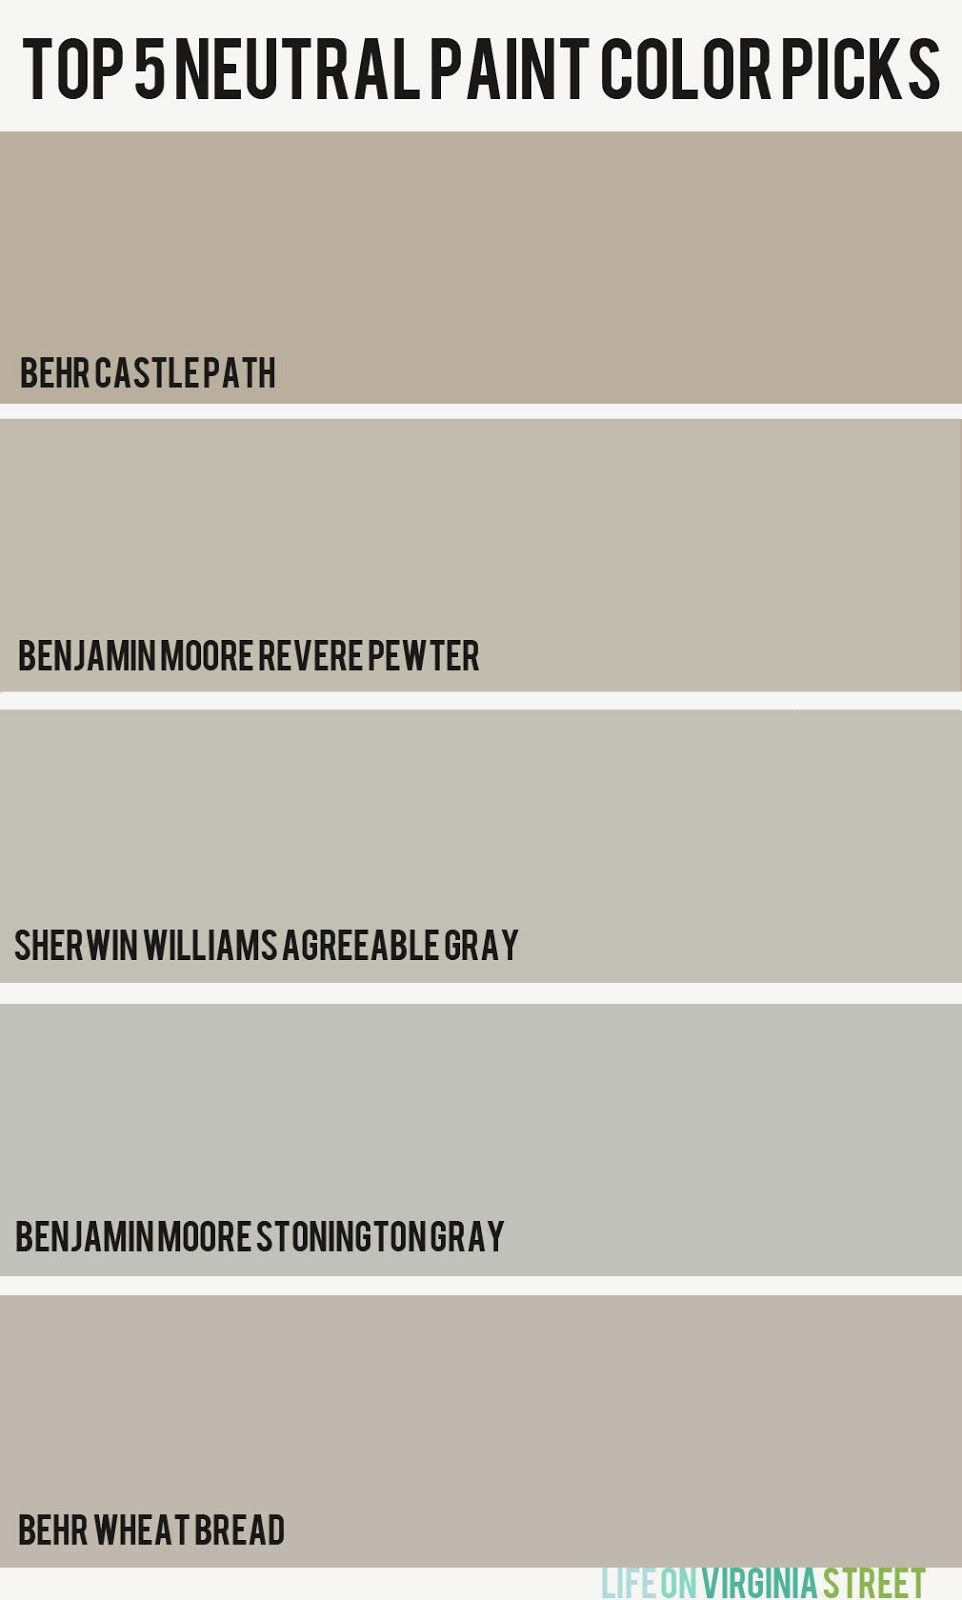 How To Pick The Perfect Paint Color And My Top Five Neutral Picks